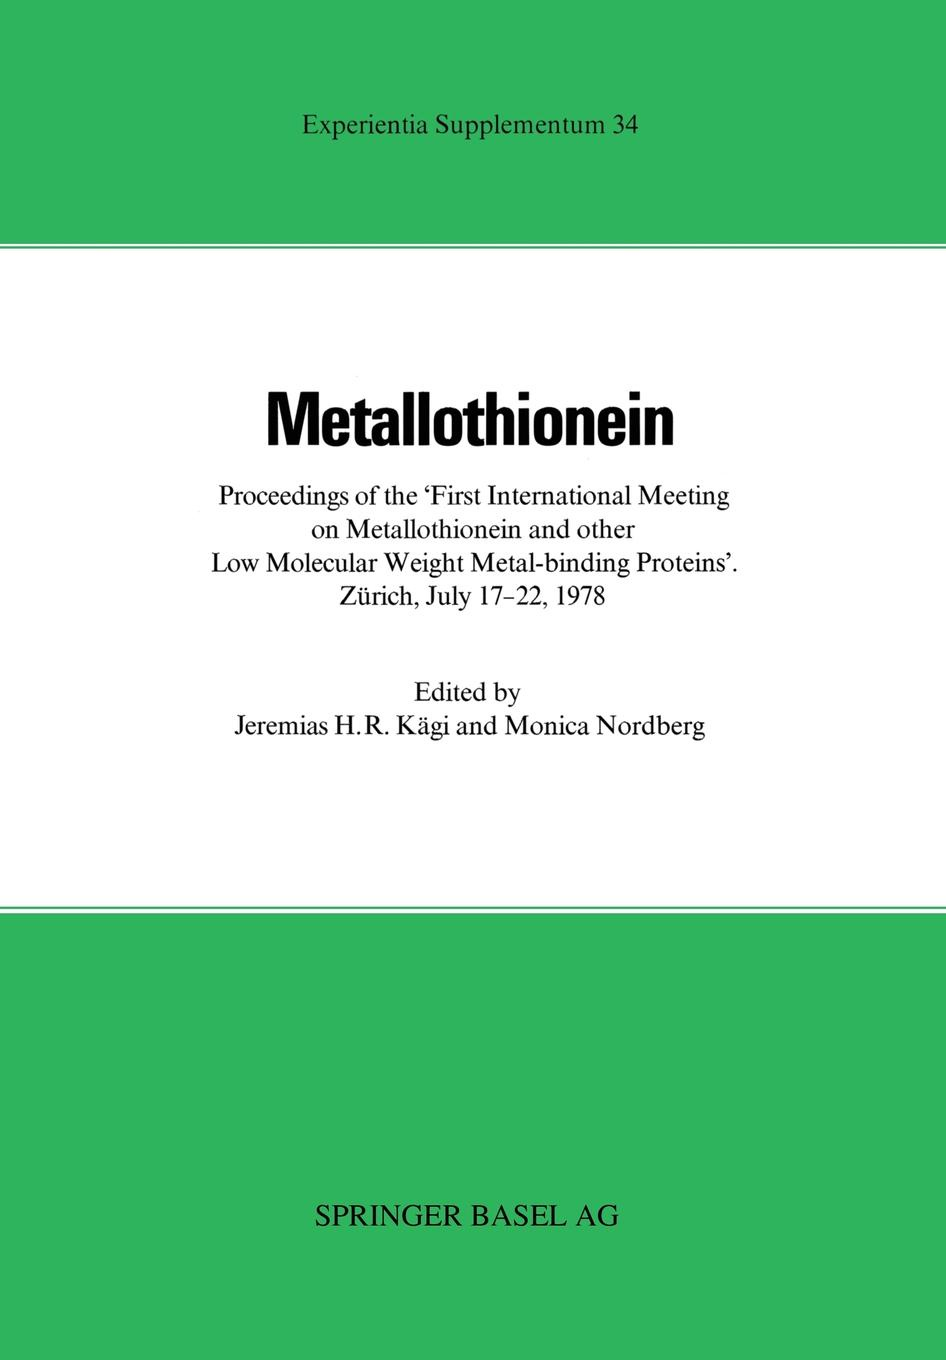 J. Kagi, Piscator Metallothionein. Proceedings of the -First International Meeting on Metallothionein and Other Low Molecular Weight Metal-Binding Protei maternal correlates of low birth weight deliveries